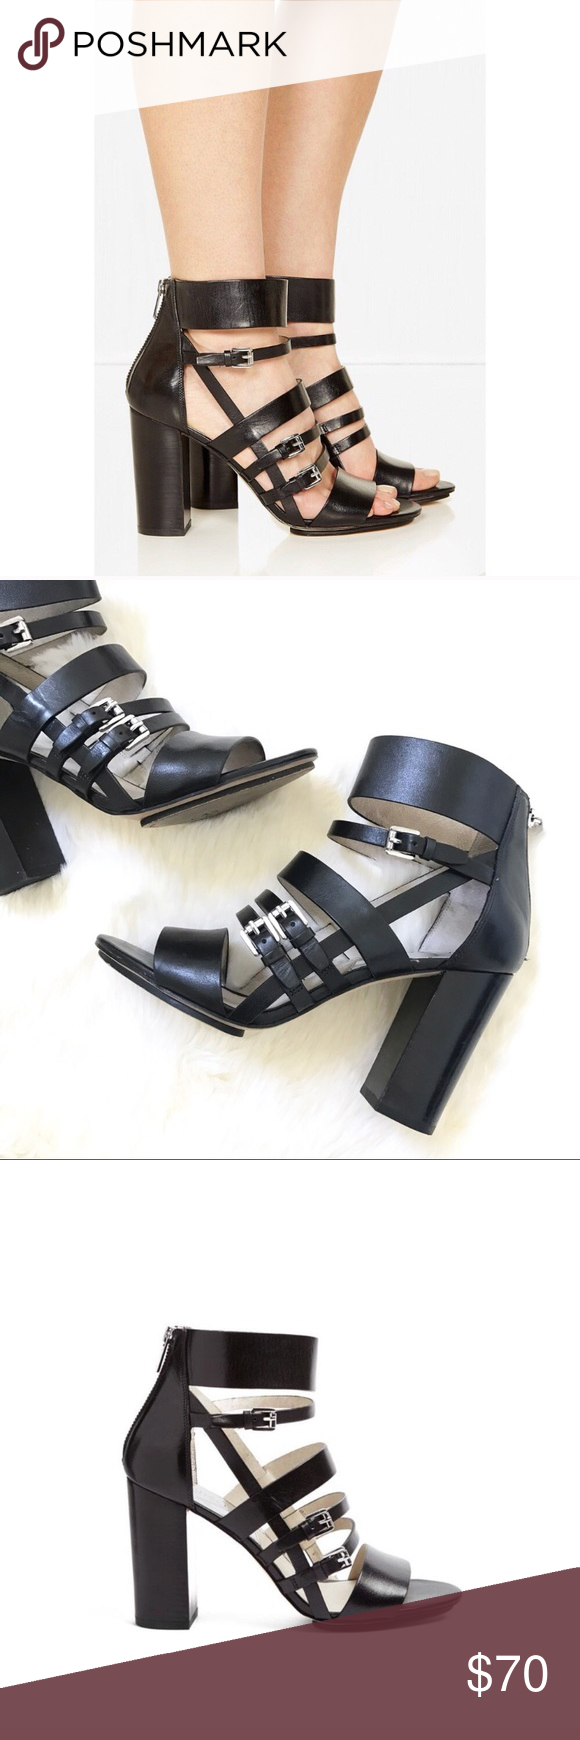 21719ef6a3f   MICHAEL KORS   Michael Kors Black Winston Leather Strappy Chunky Heels  Excellent condition Michael Kors Shoes Heels